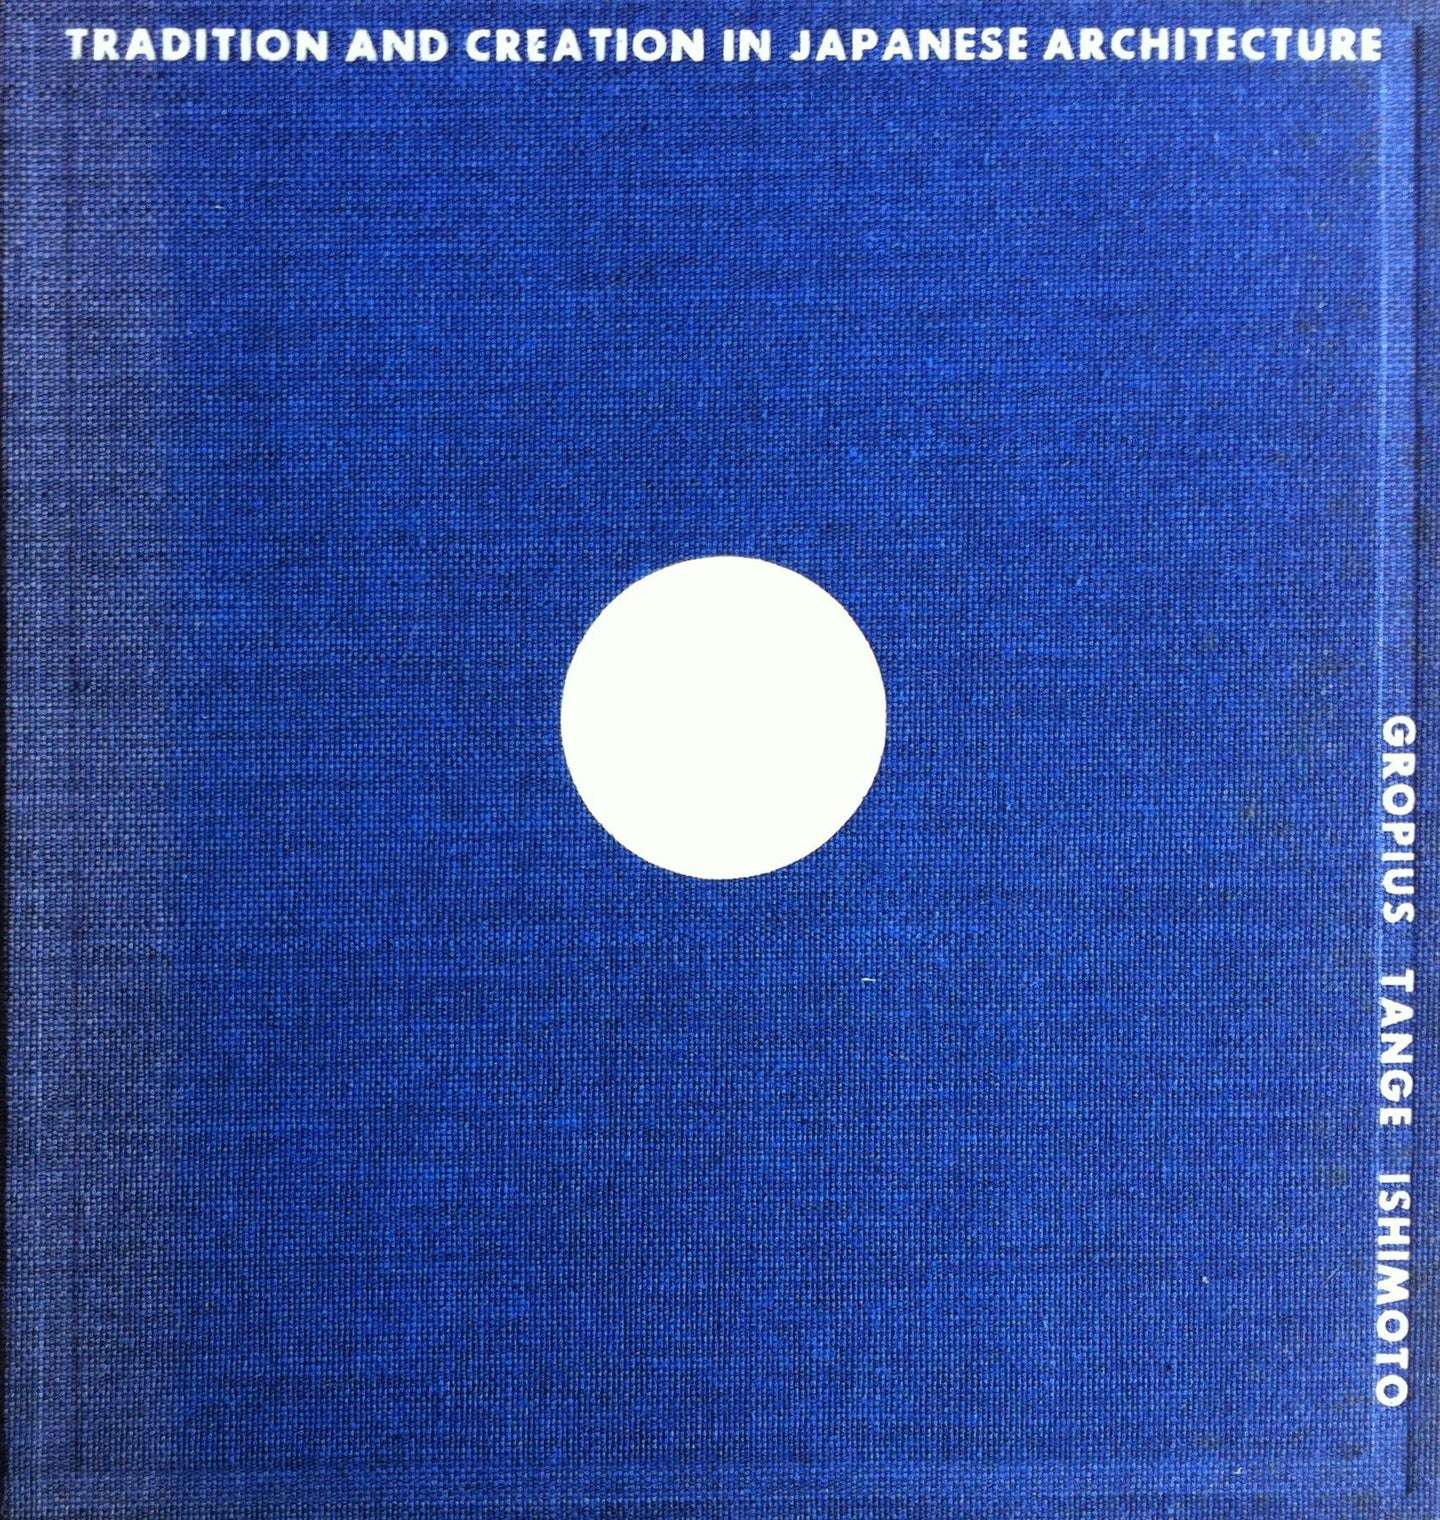 Katsura; Tradition and Creation in Japanese Architecture - Yasuhiro Ishimoto